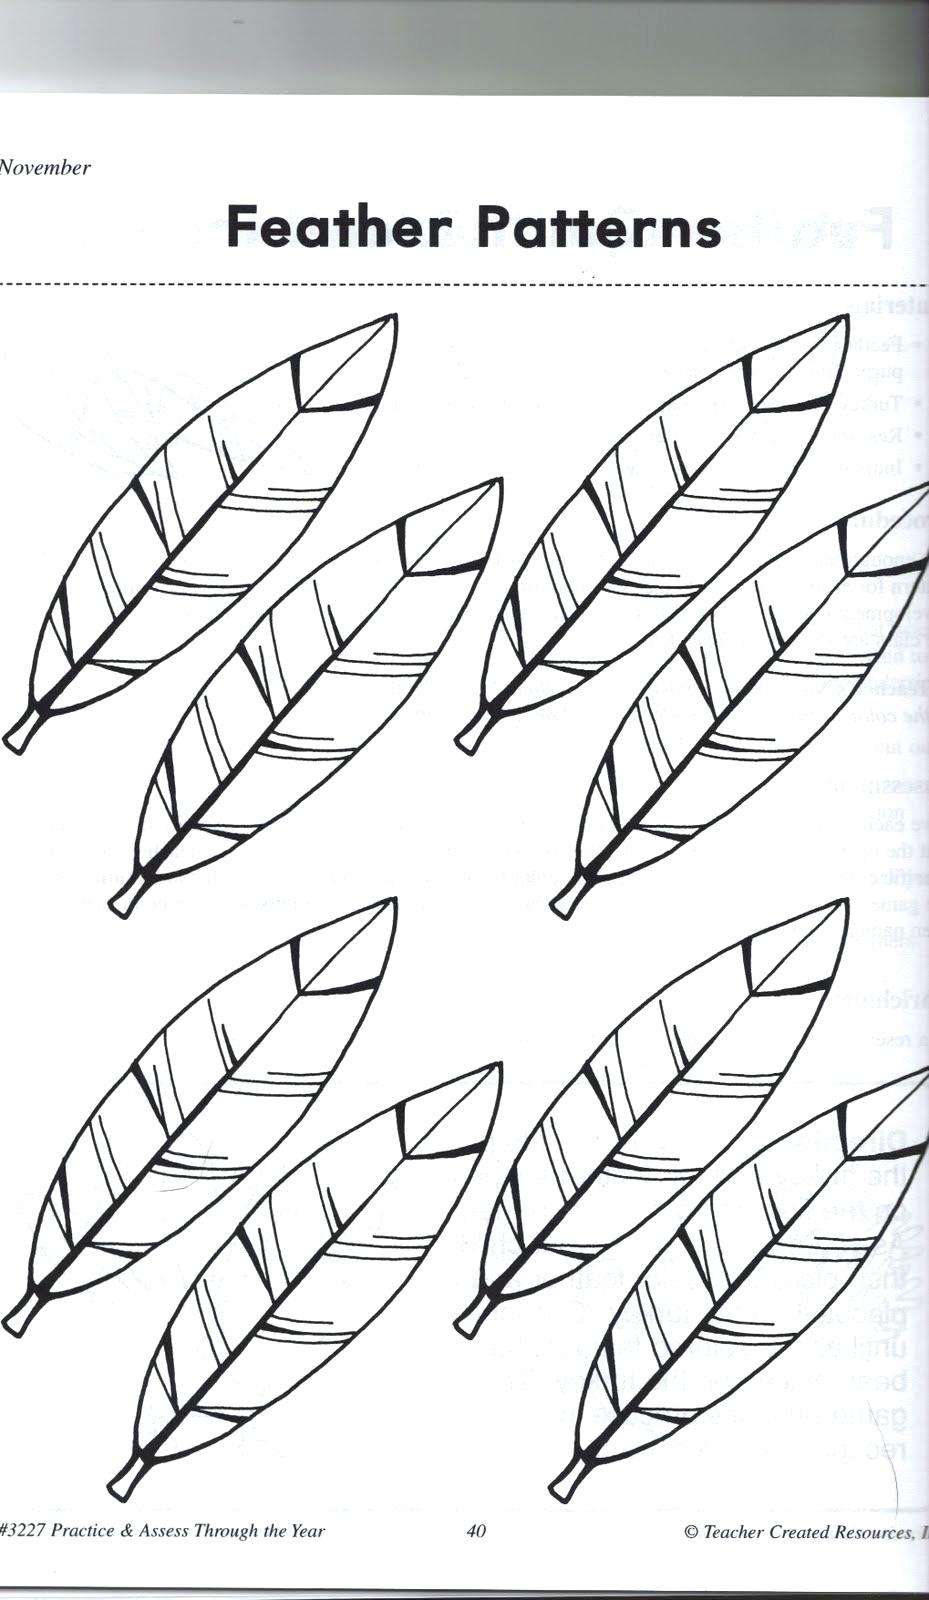 photo regarding Turkey Feather Printable referred to as Turkey Feathers Drawing at  Cost-free for